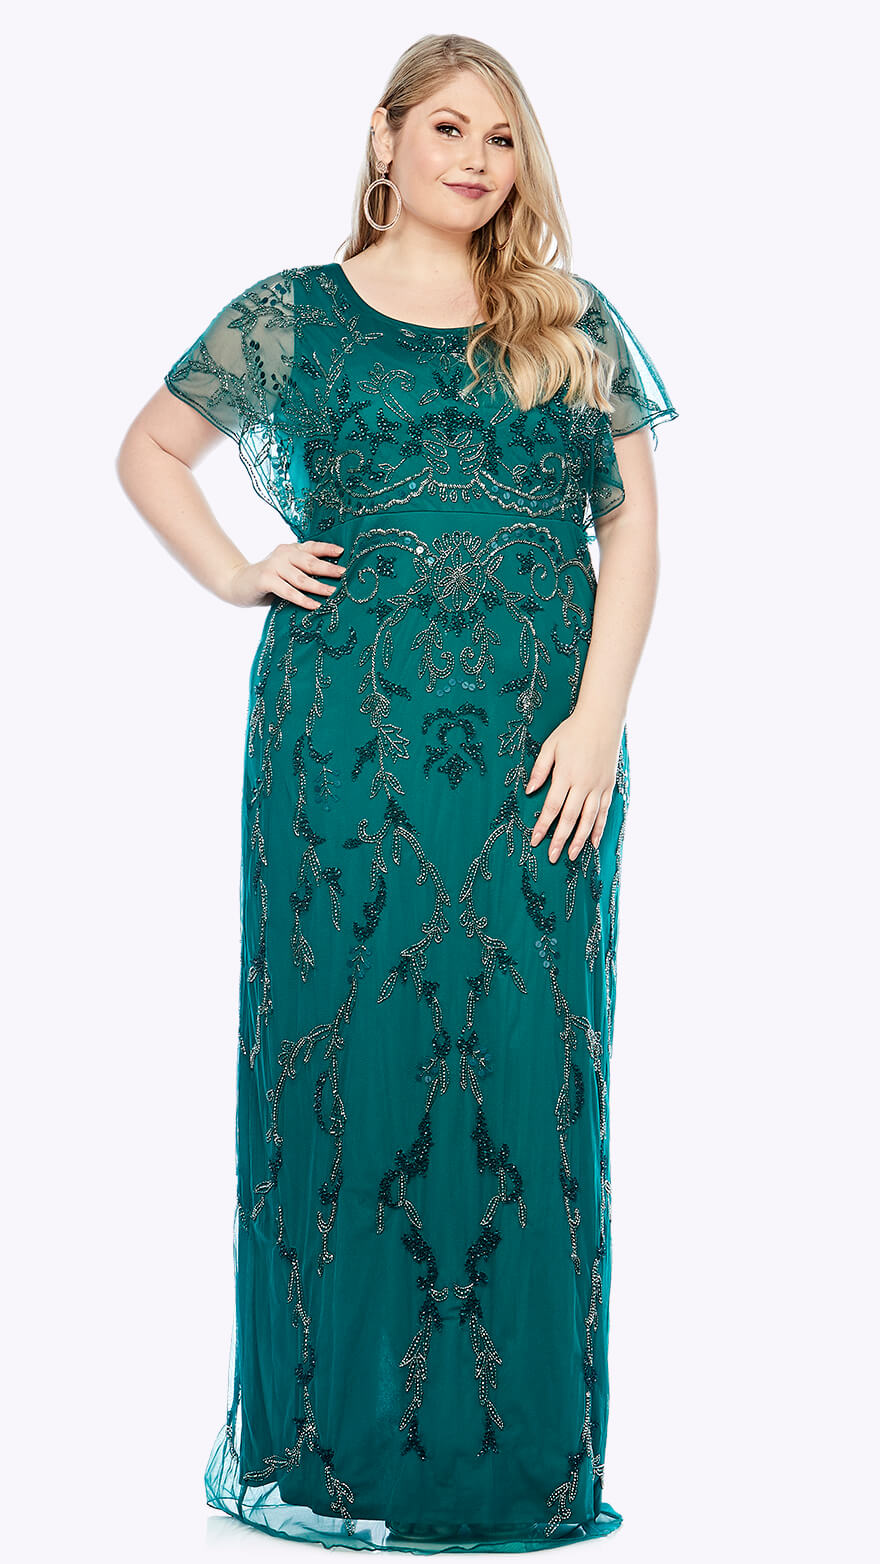 LJ0390 Full-length gown with beaded chiffon overlay in organic damask inspired pattern